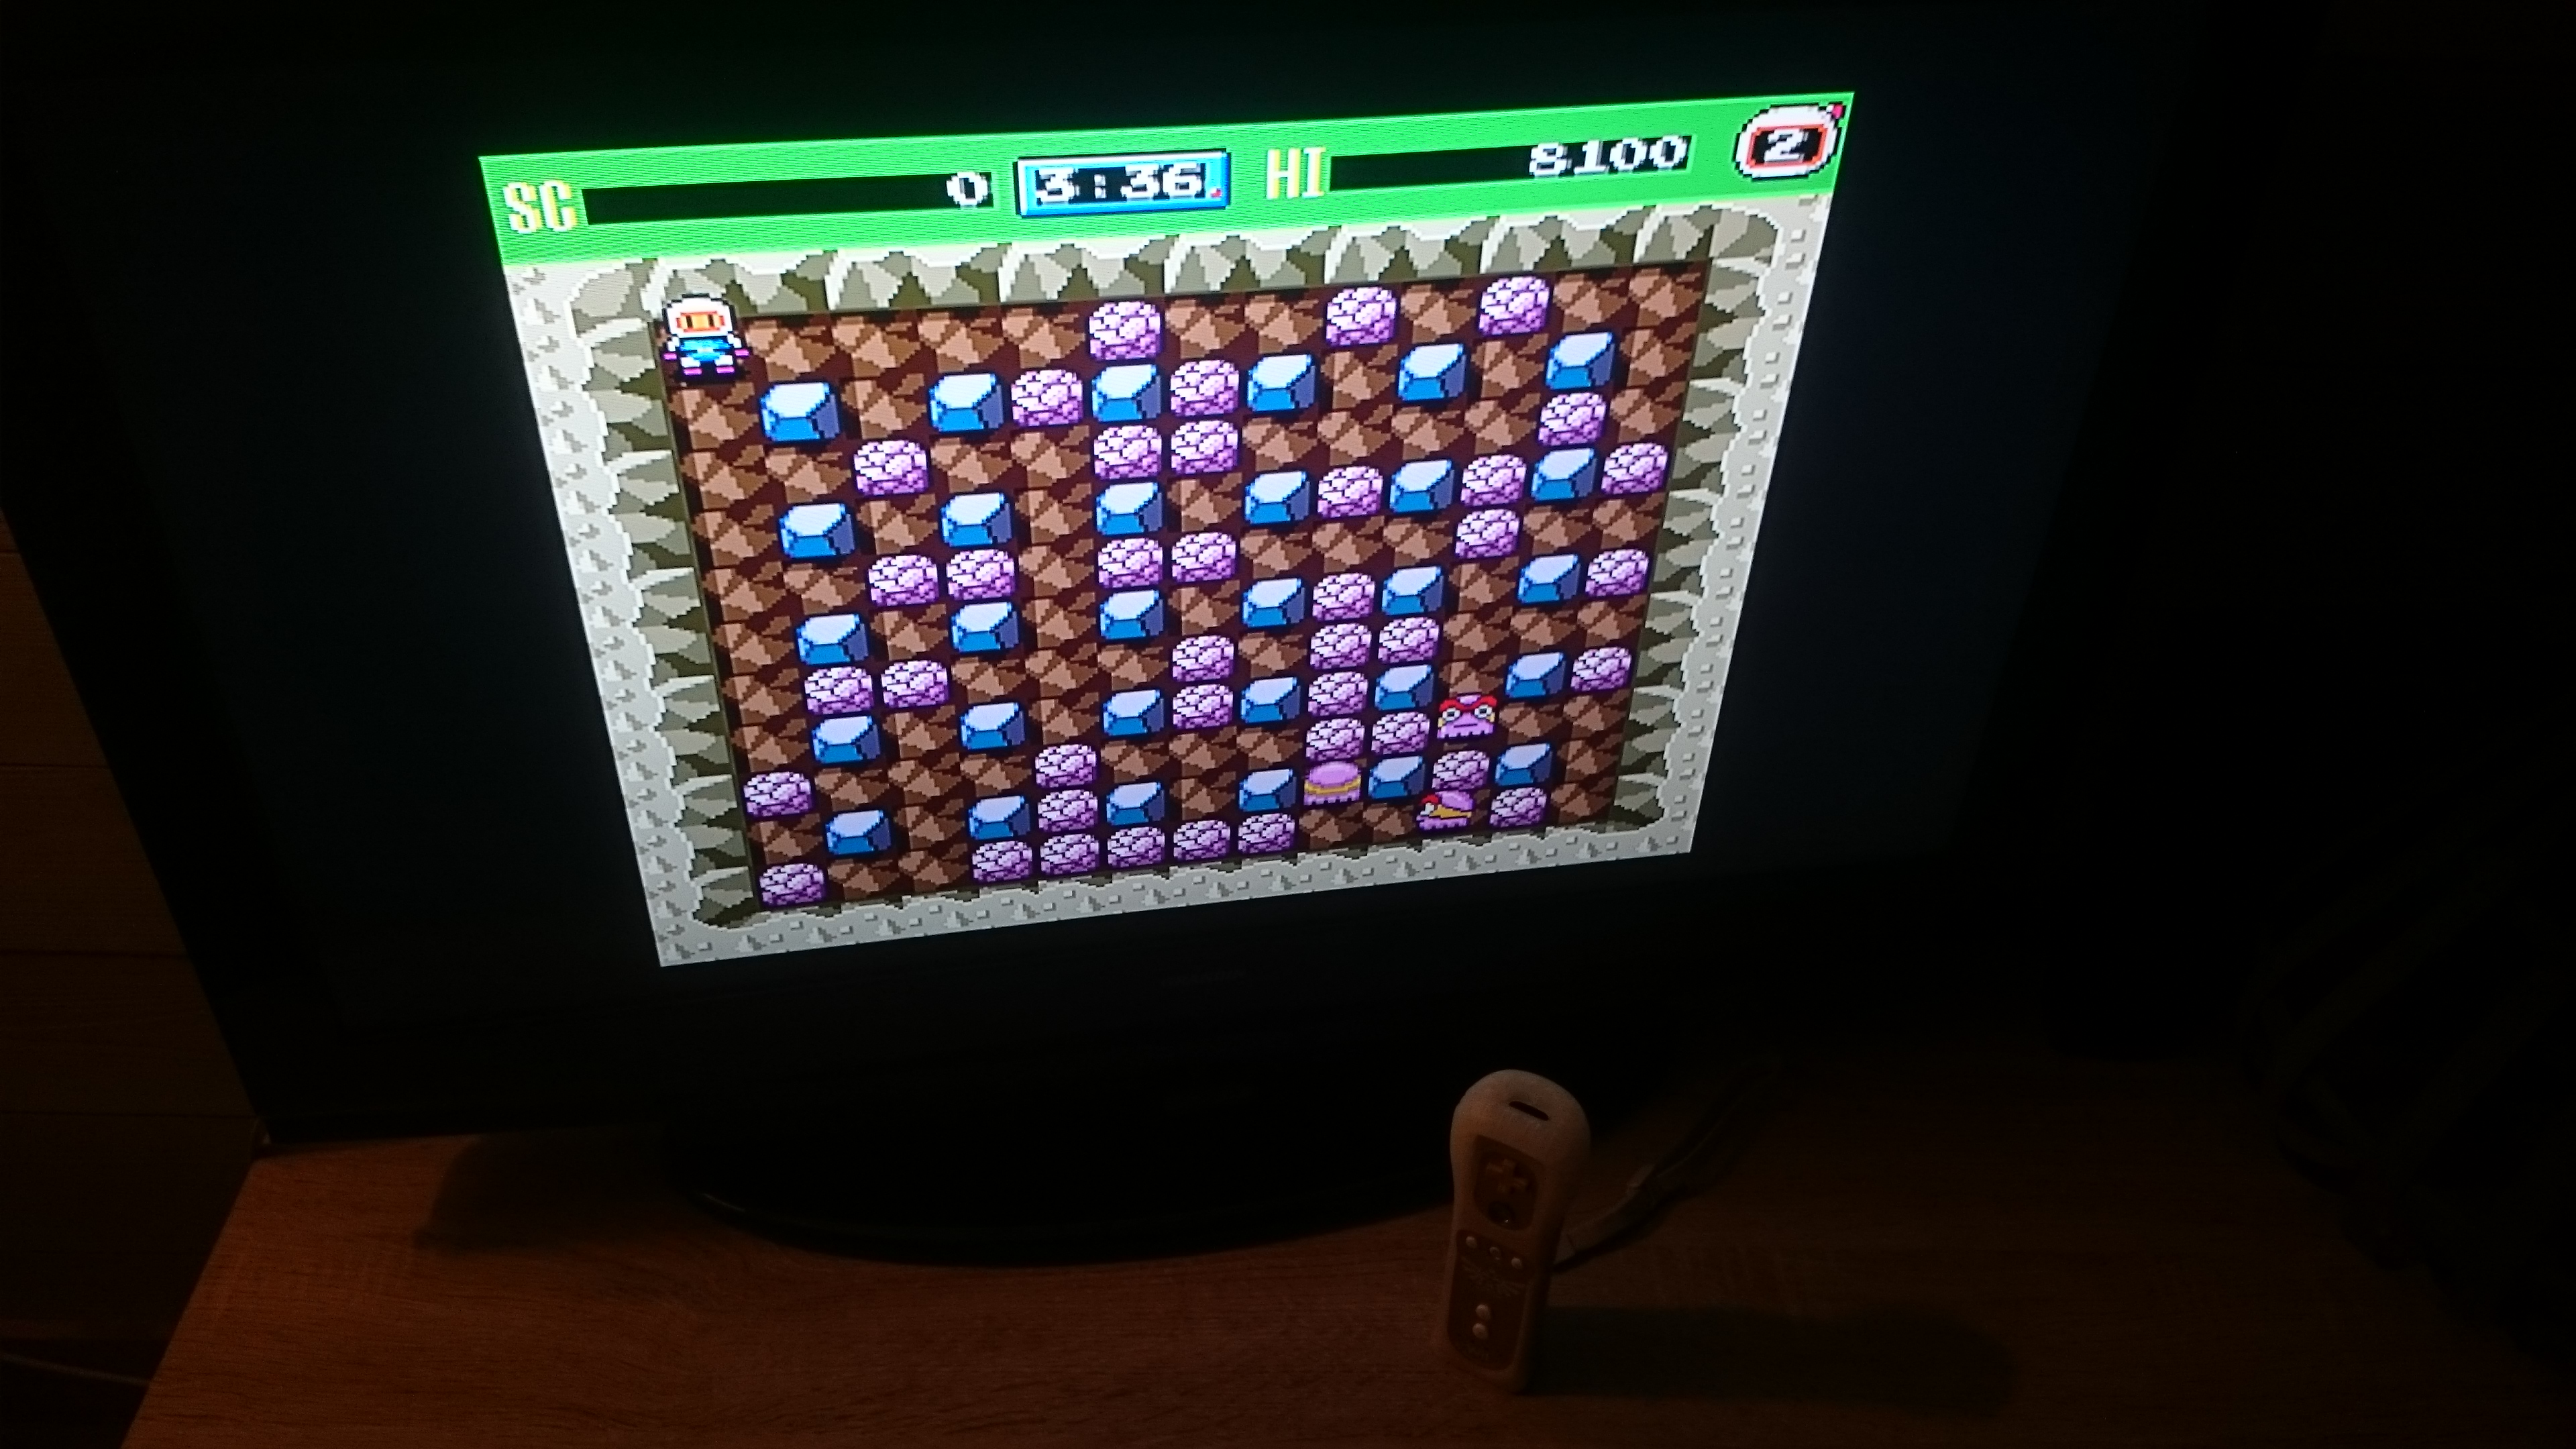 Bomberman 93 [Normal] 8,100 points